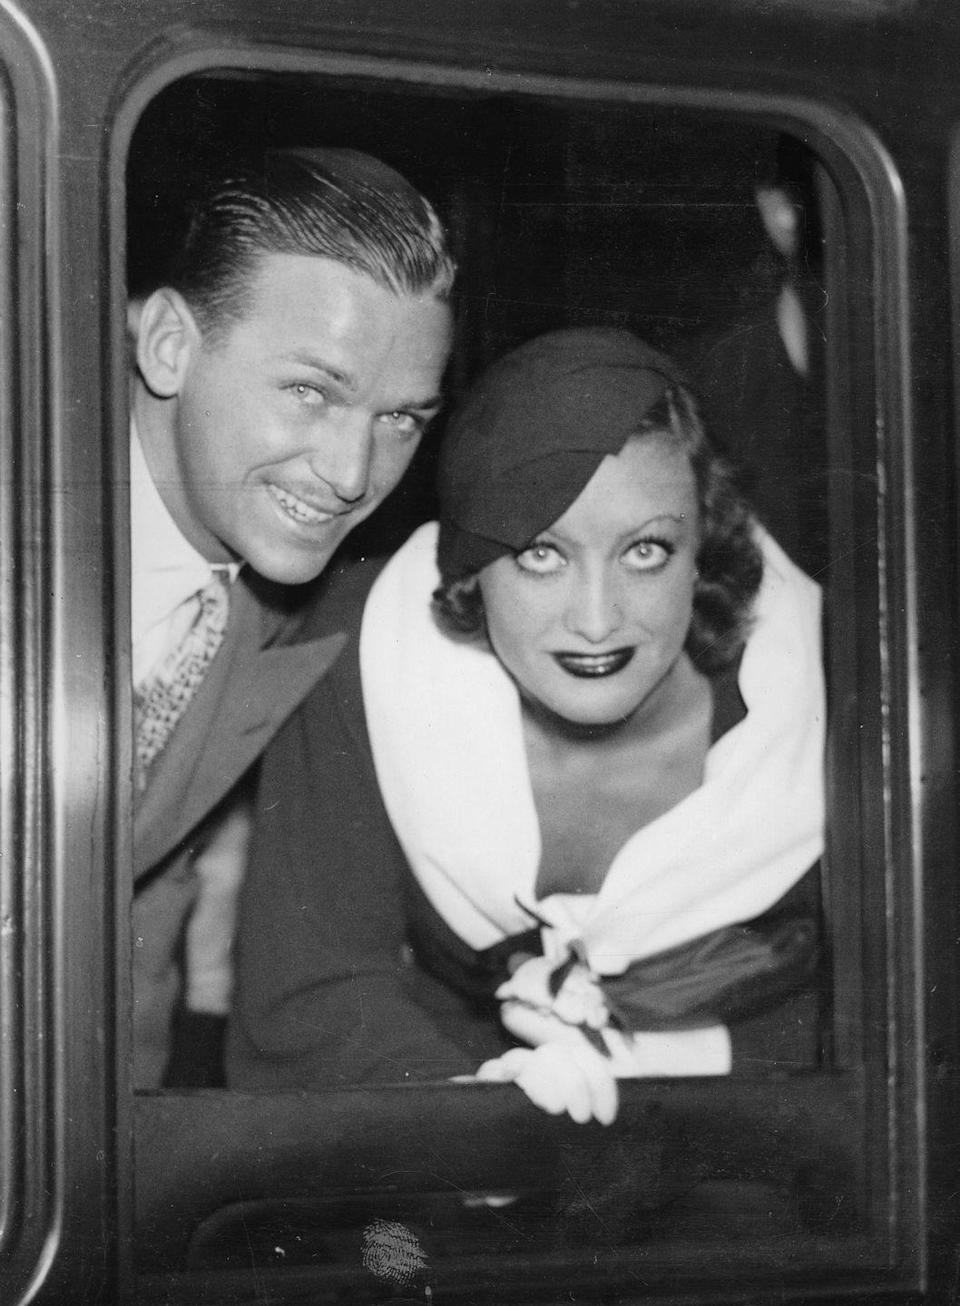 <p>Joan's first marriage came to an end when she and Douglas divorced in 1933. There were rumors of infidelity on both sides.</p>